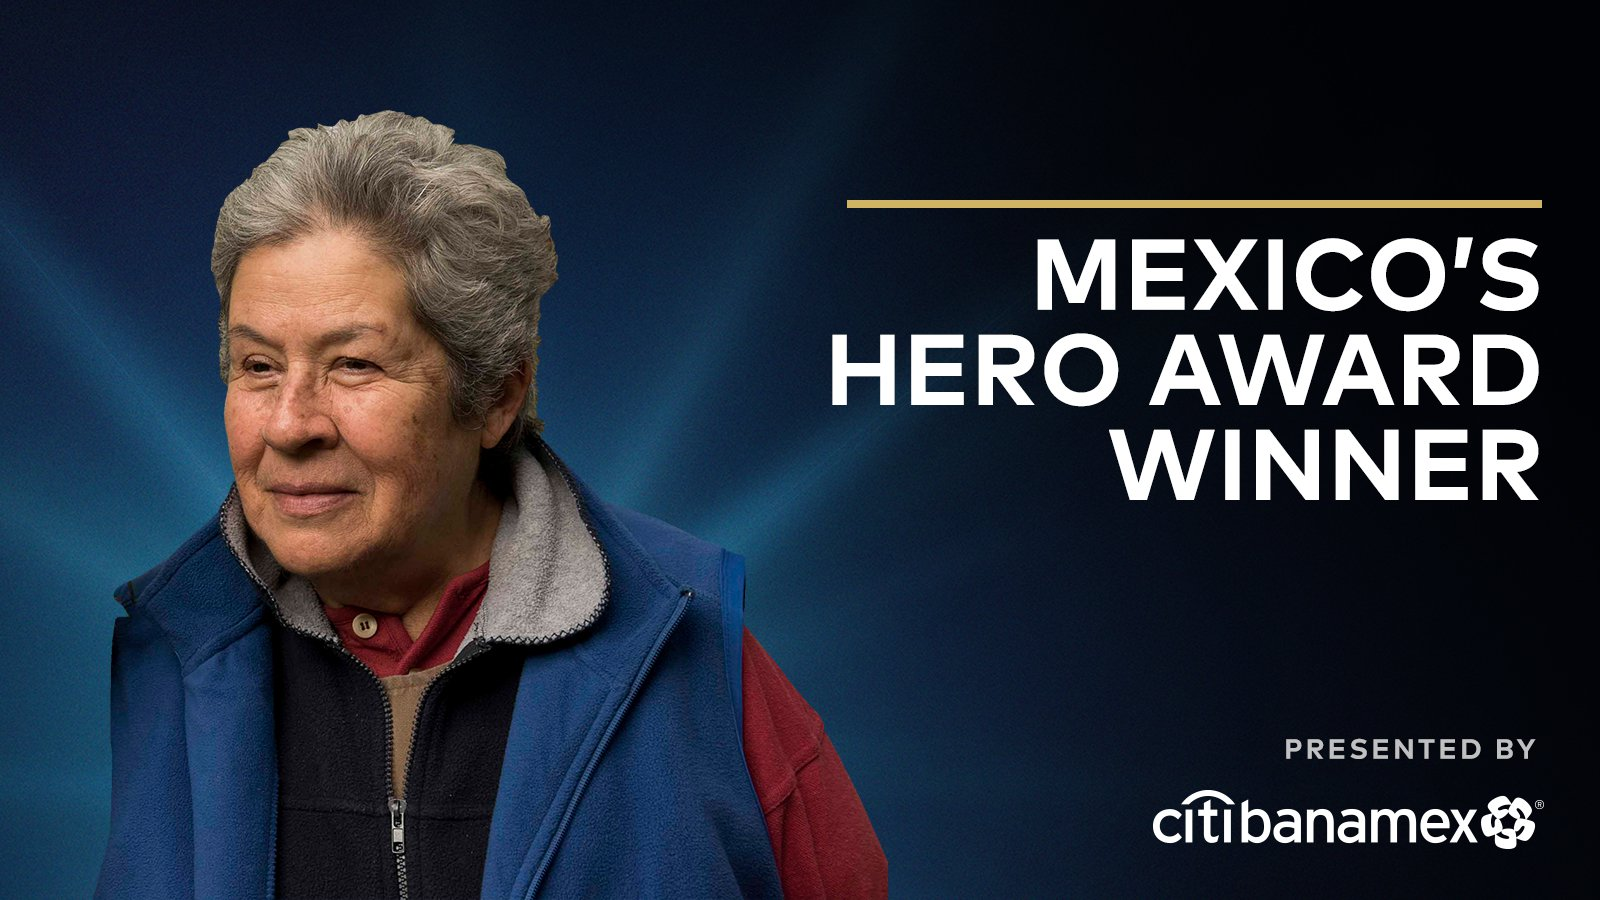 Mexico' Hero Award